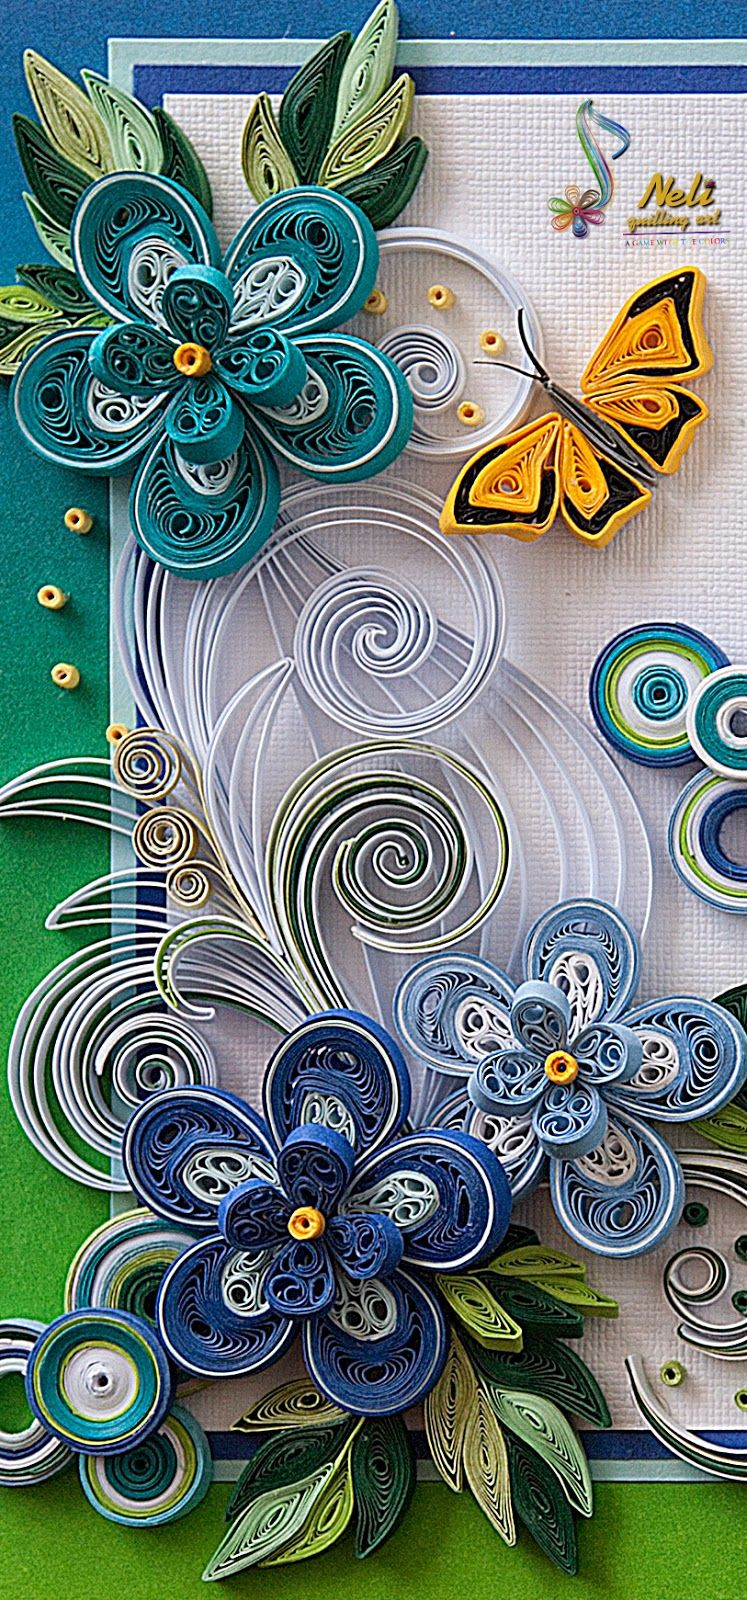 Quilling by neli quilling art quilling cards 14 8 cm for Art design ideas for paper